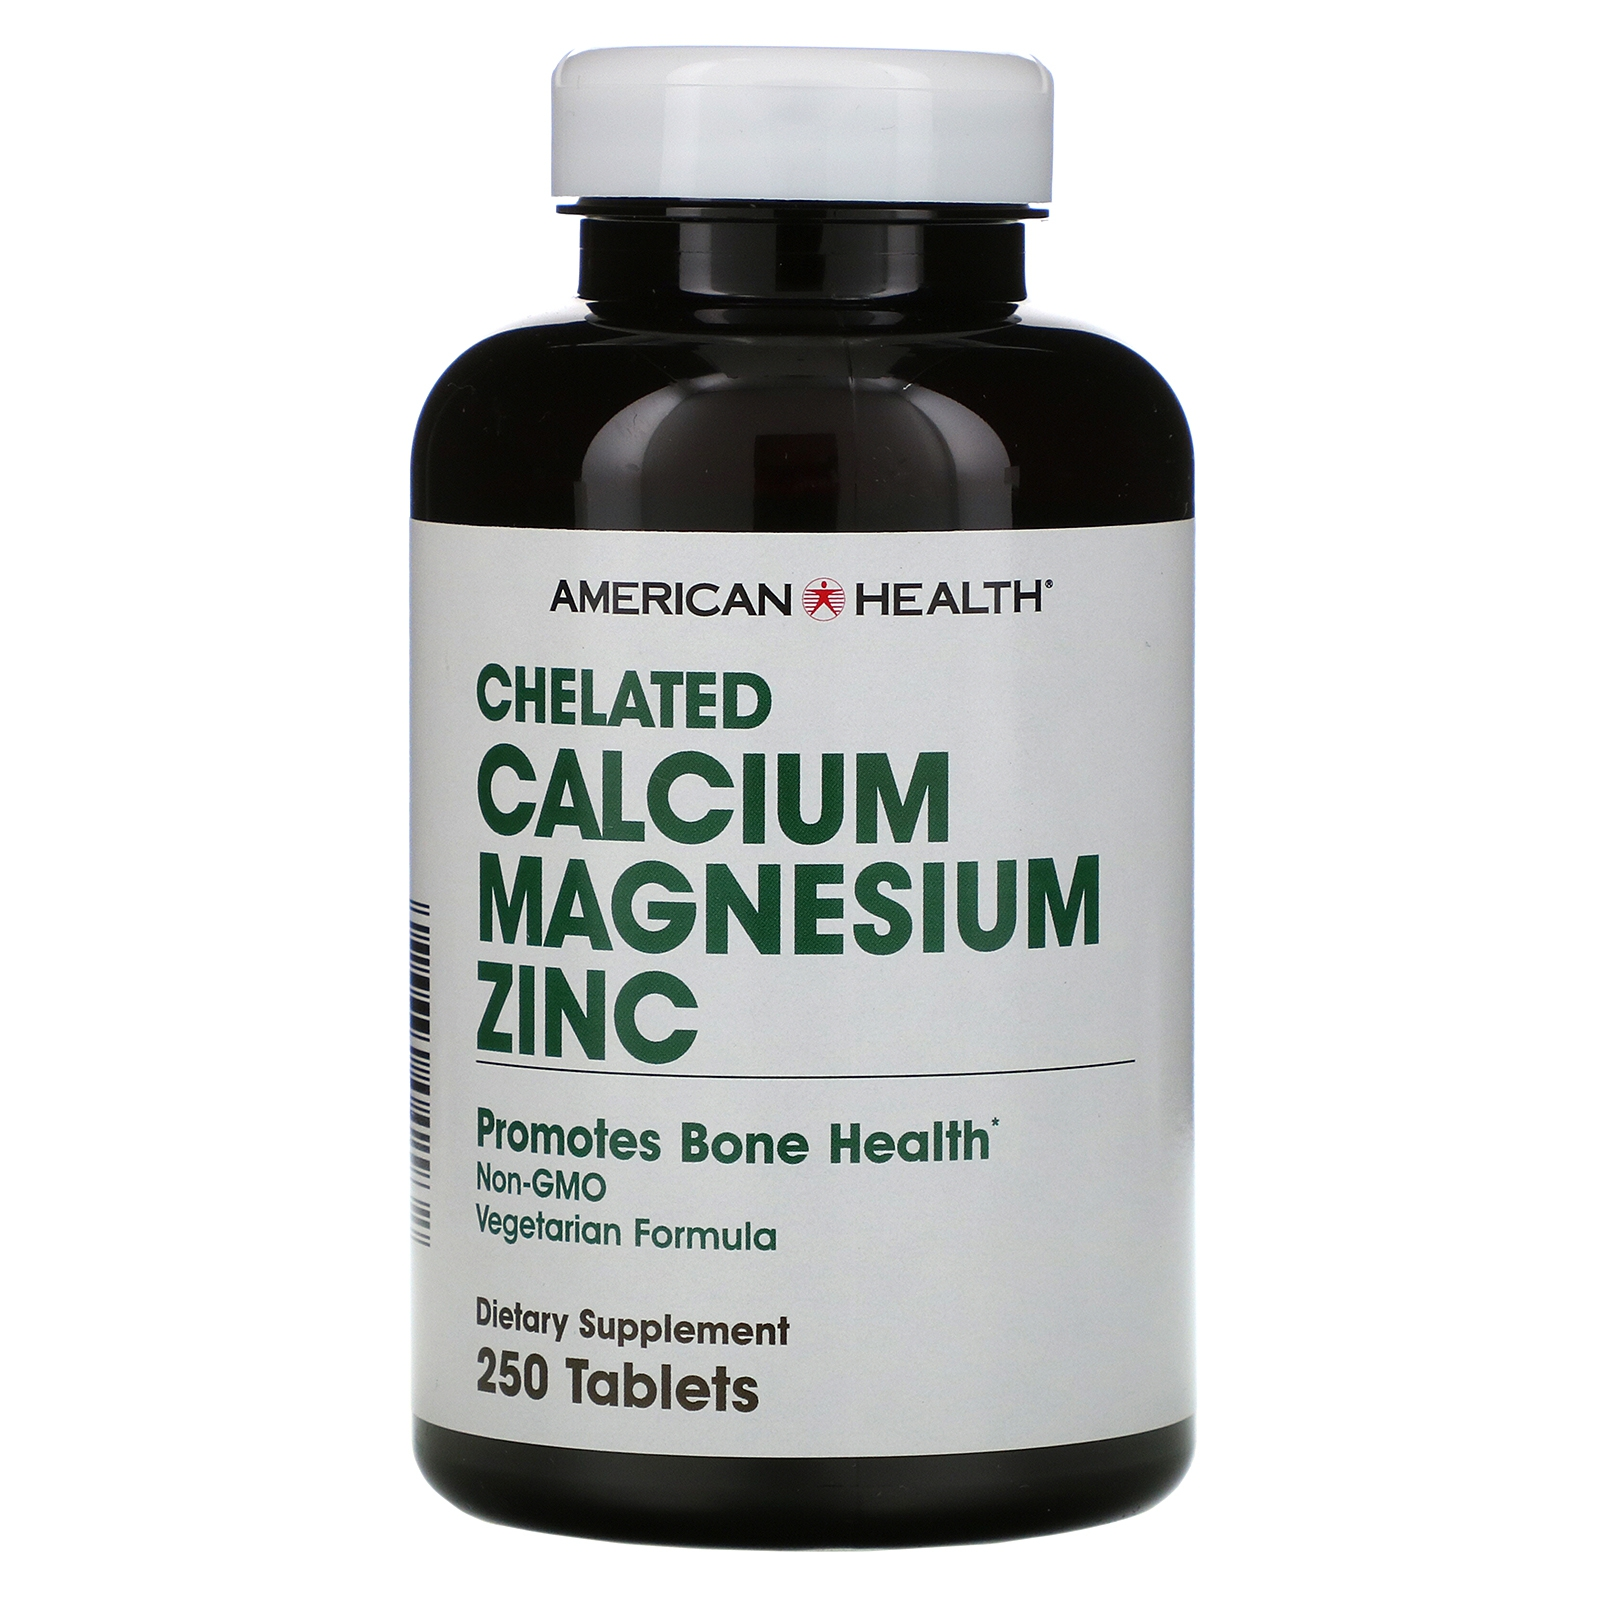 Image of Chelated Calcium Magnesium Zinc (250 tablets) - American Health